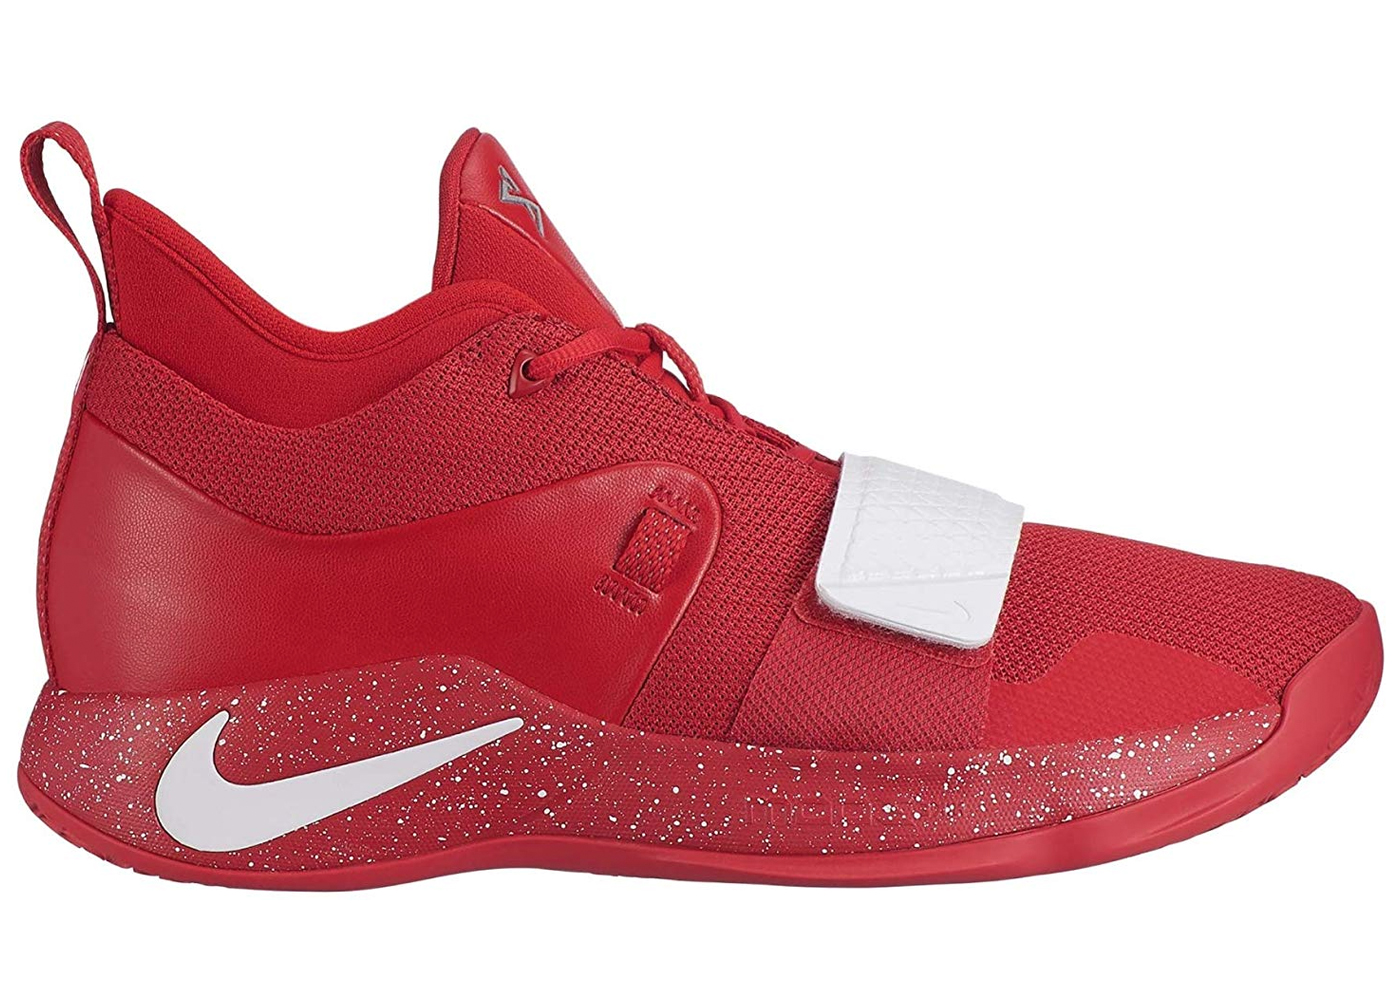 hot sale online 7e86a c0303 Pg 2.5 University Red in University Red/White